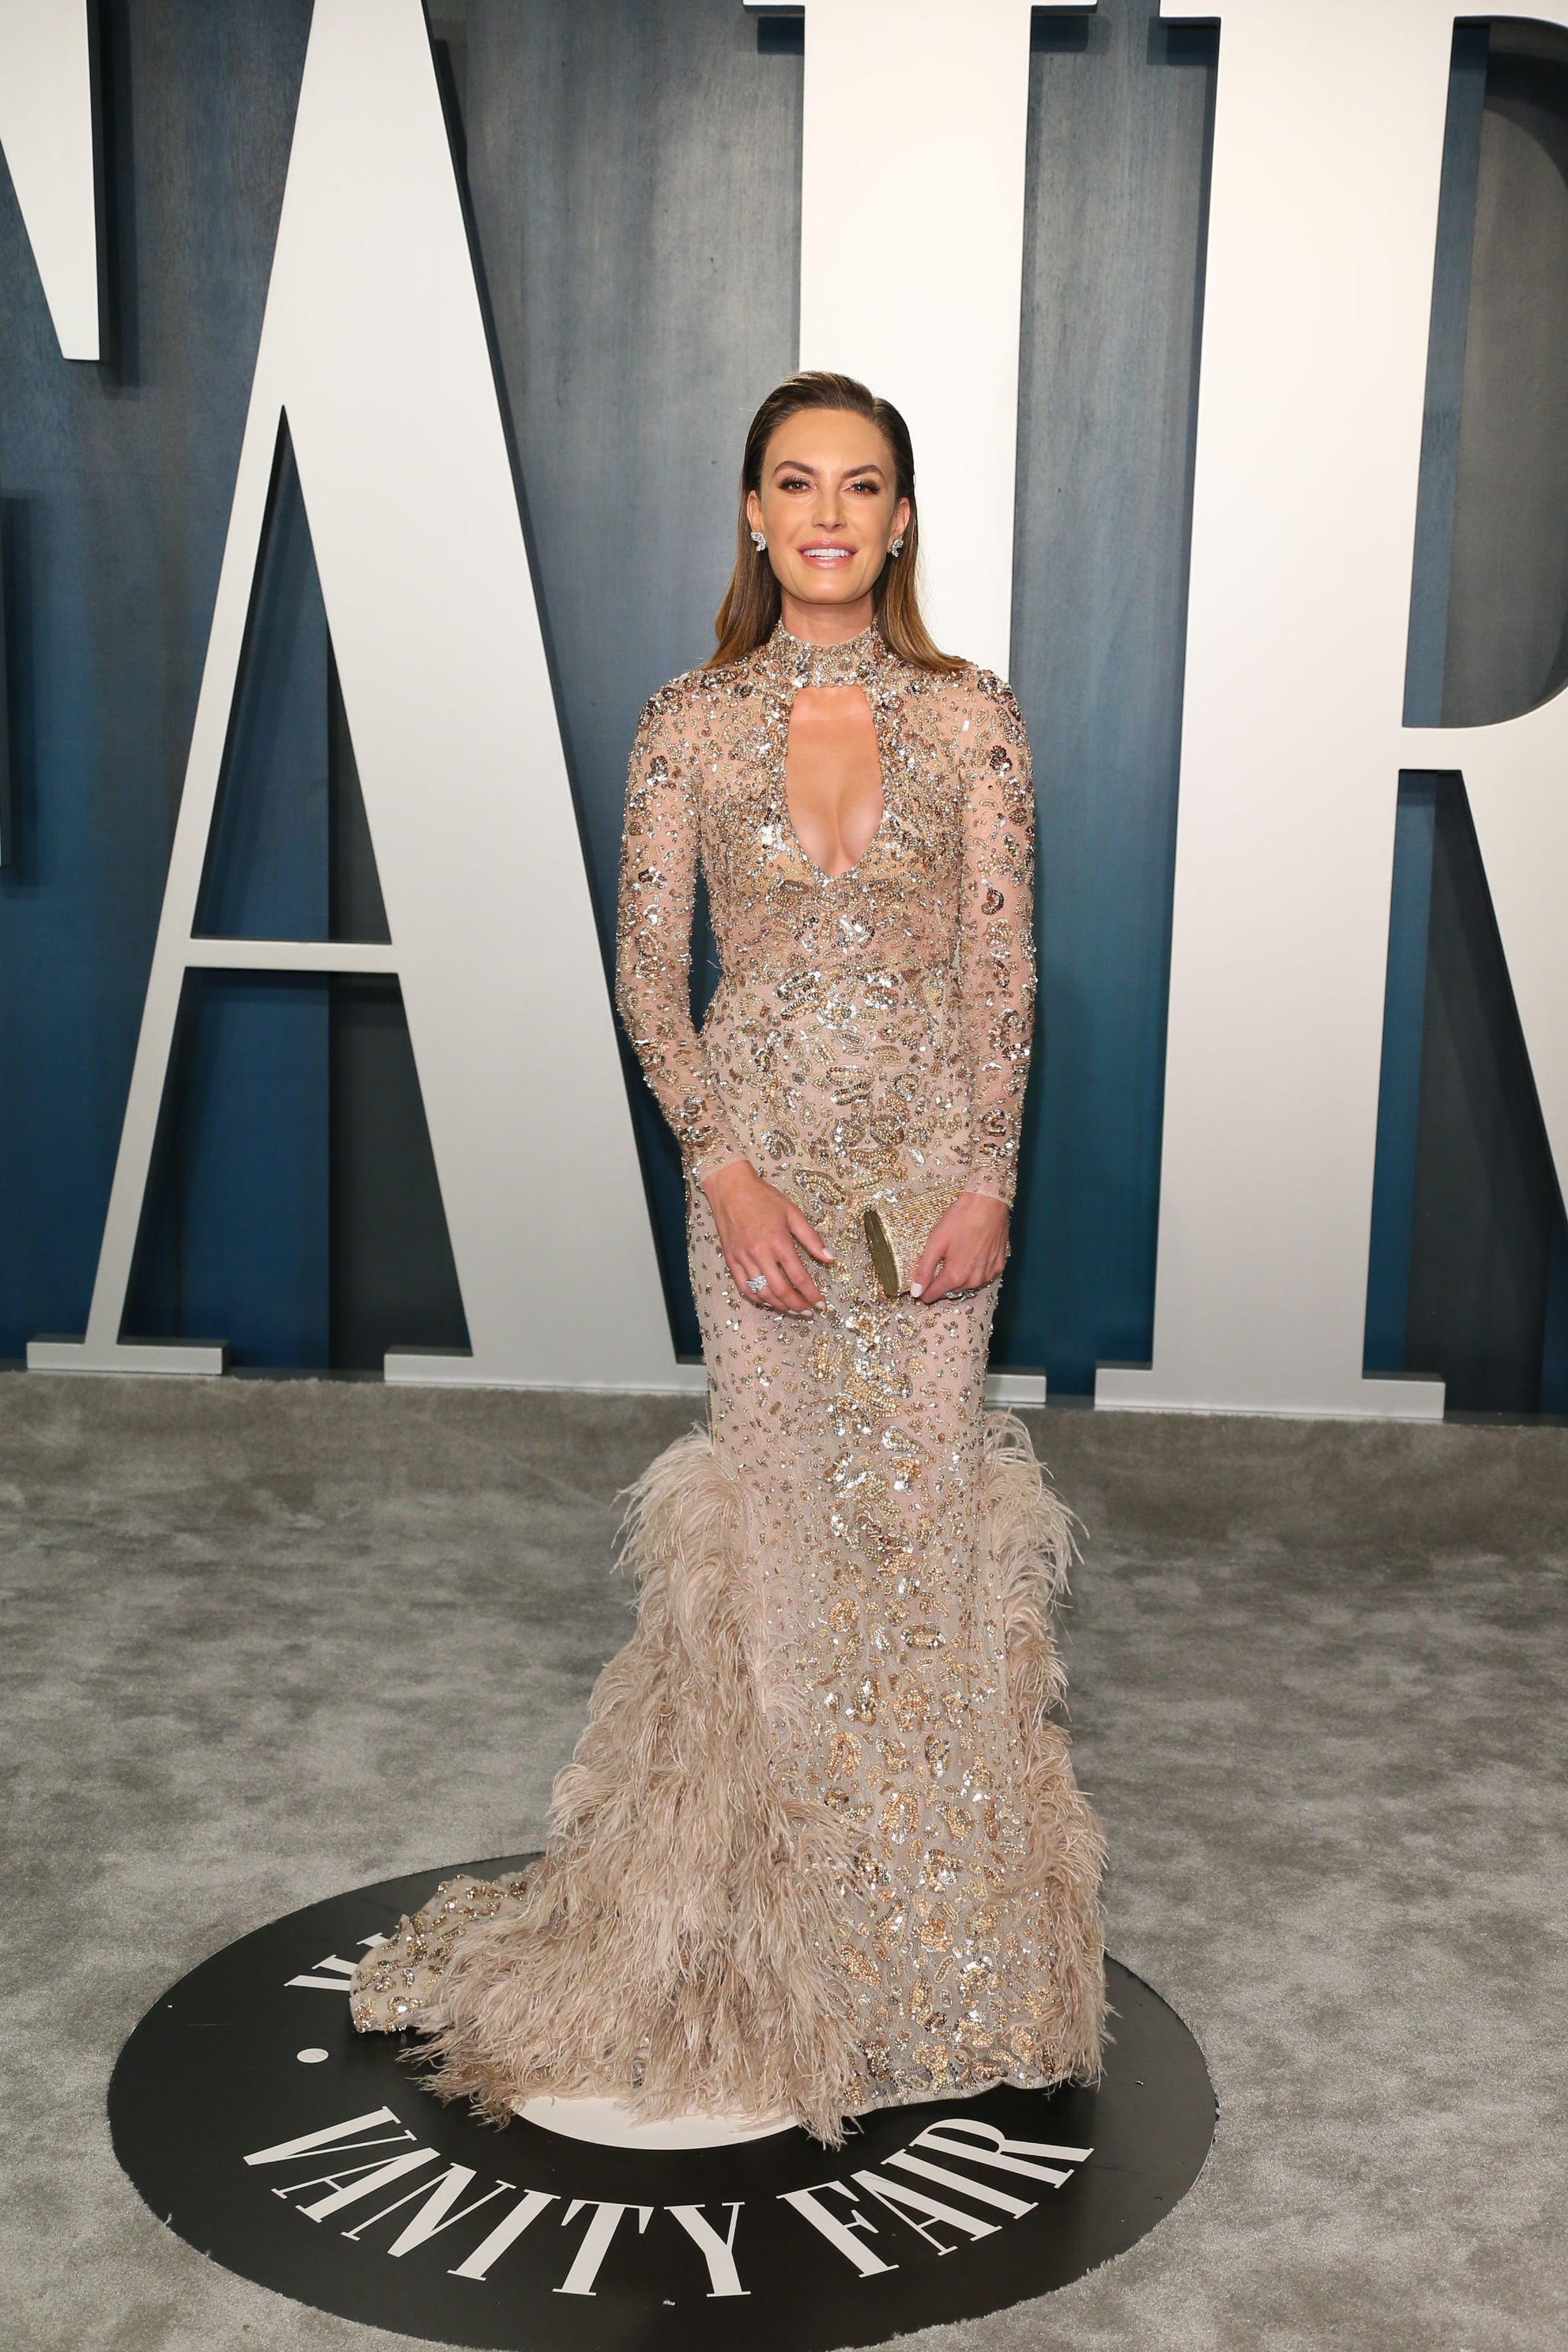 Elizabeth Chambers at the Vanity Fair Oscars Afterparty 2020 | The Glamour  Continues! These Oscars Afterparty Dresses Will Leave You in Awe | POPSUGAR  Fashion Photo 77